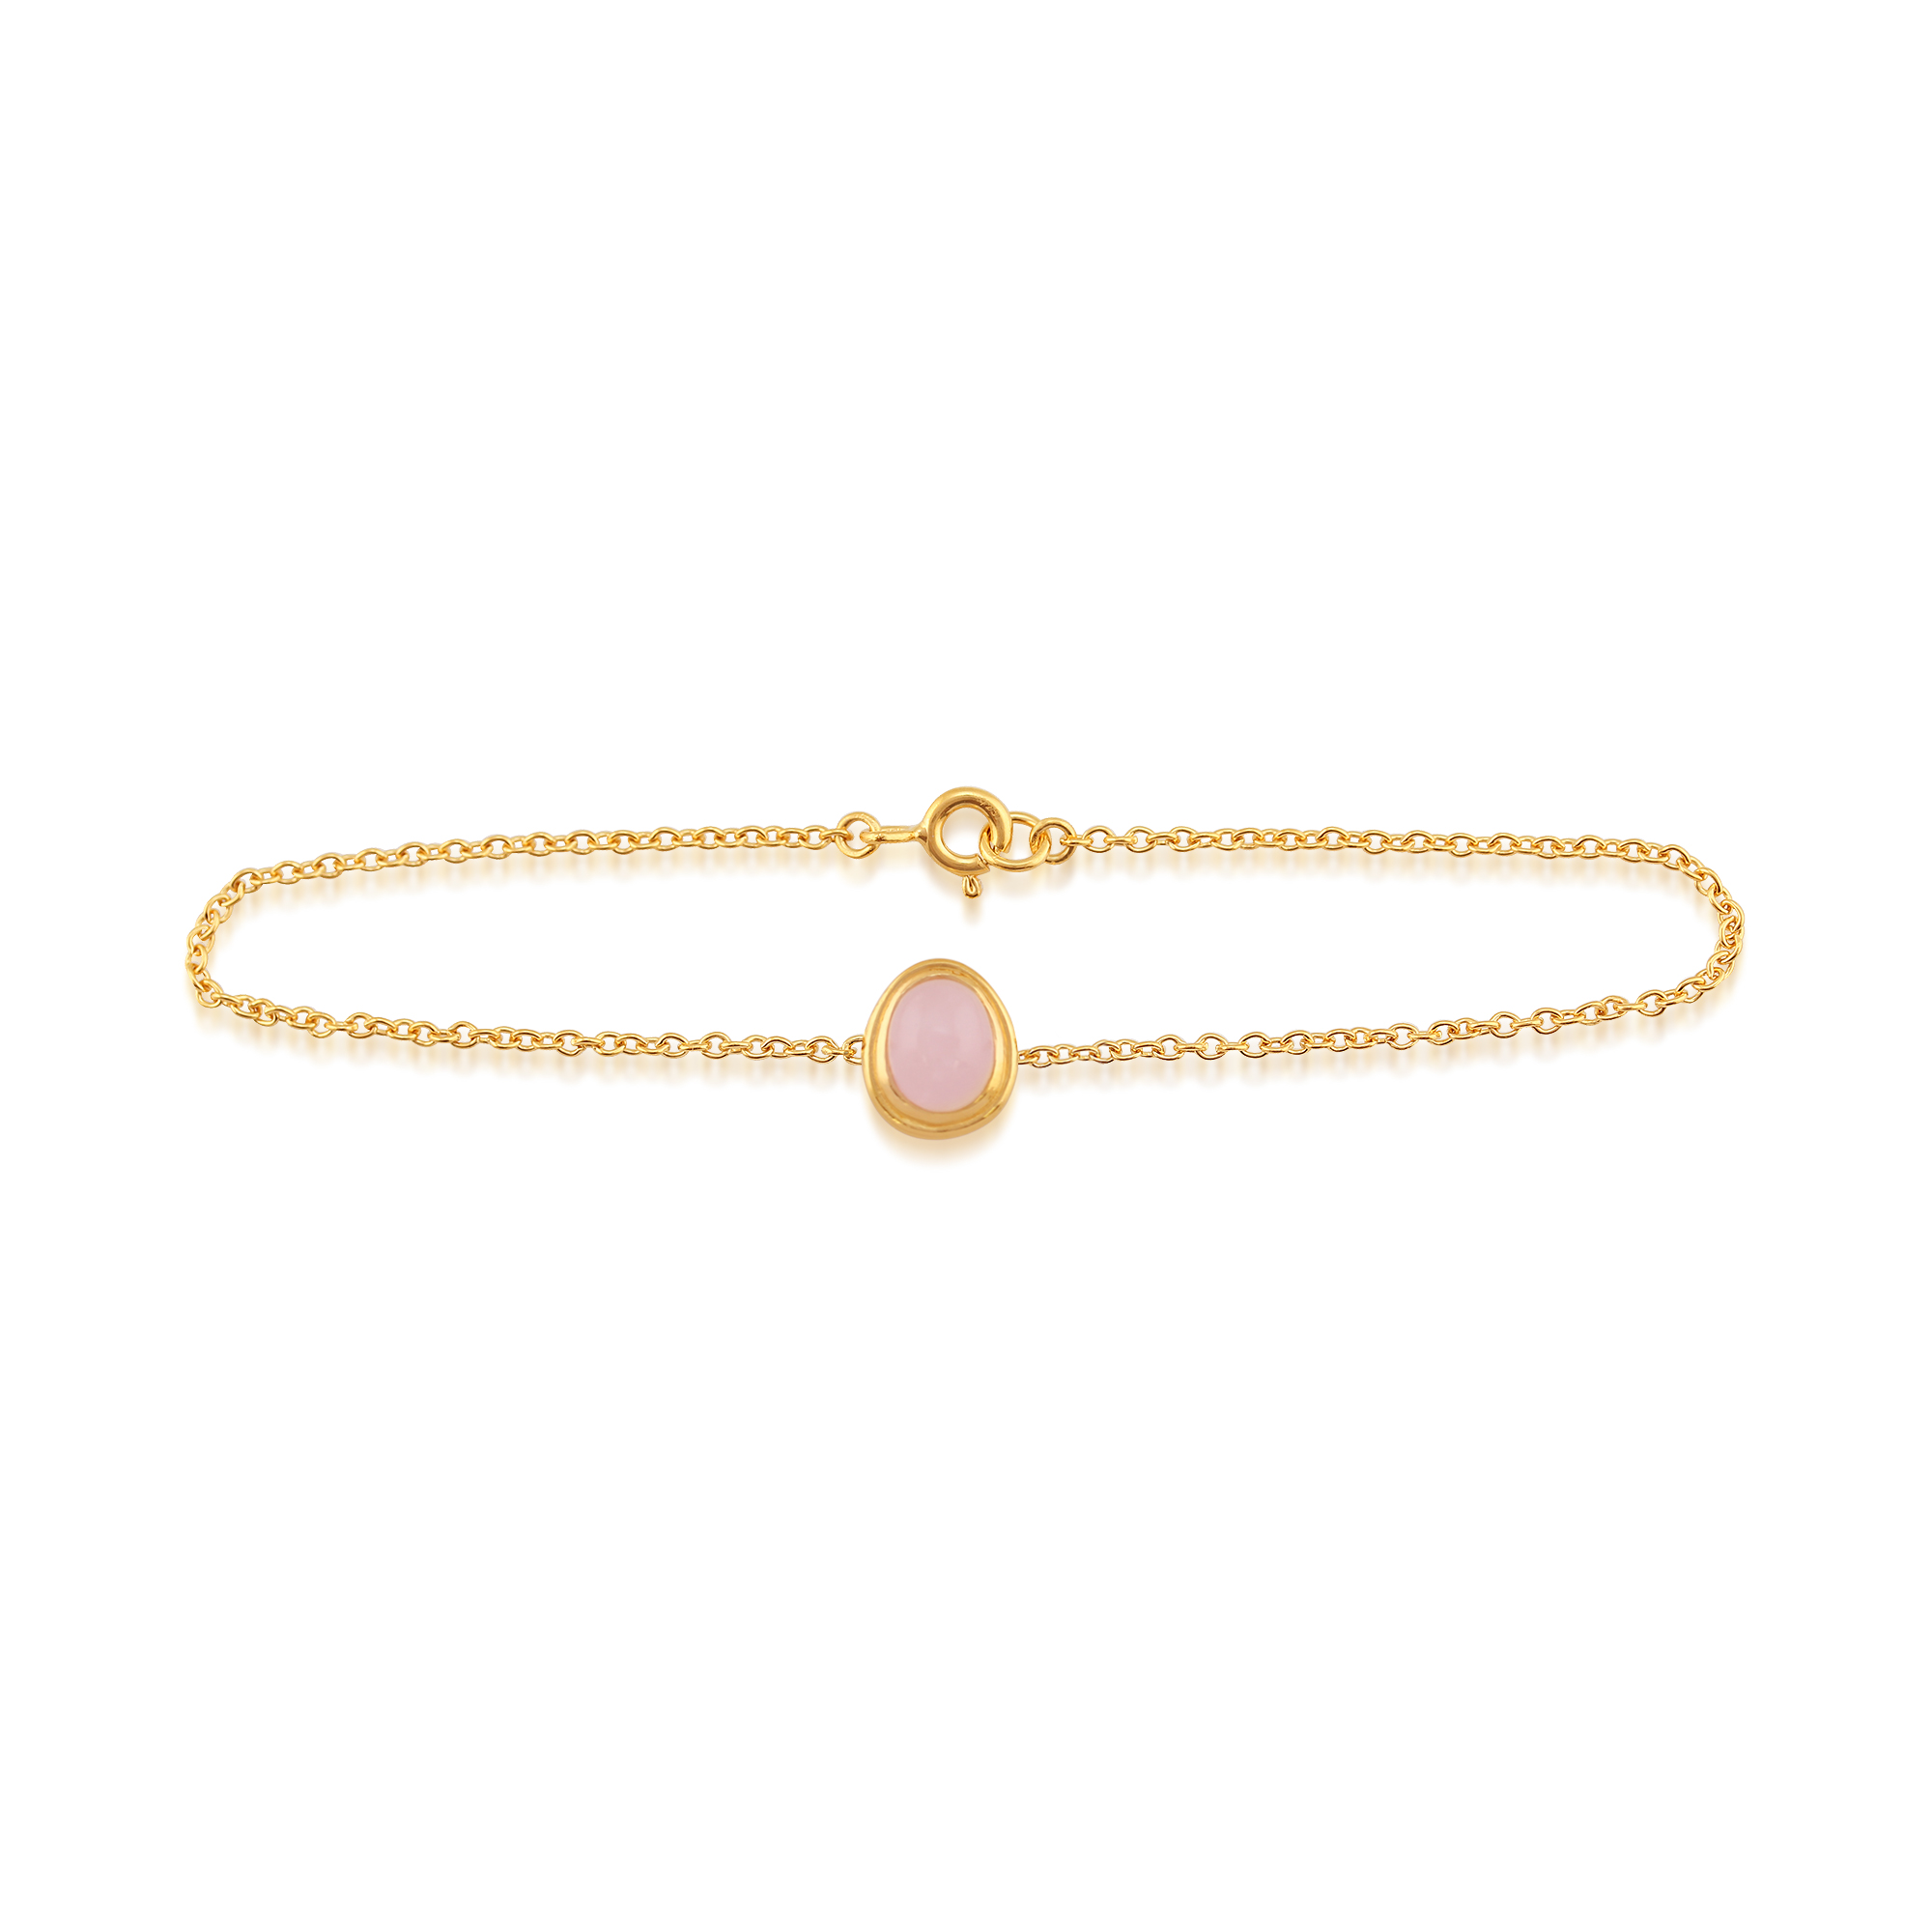 Rose Quartz 'Tara' Pastel Bracelet in 9ct Yellow Gold Plated Sterling Silver